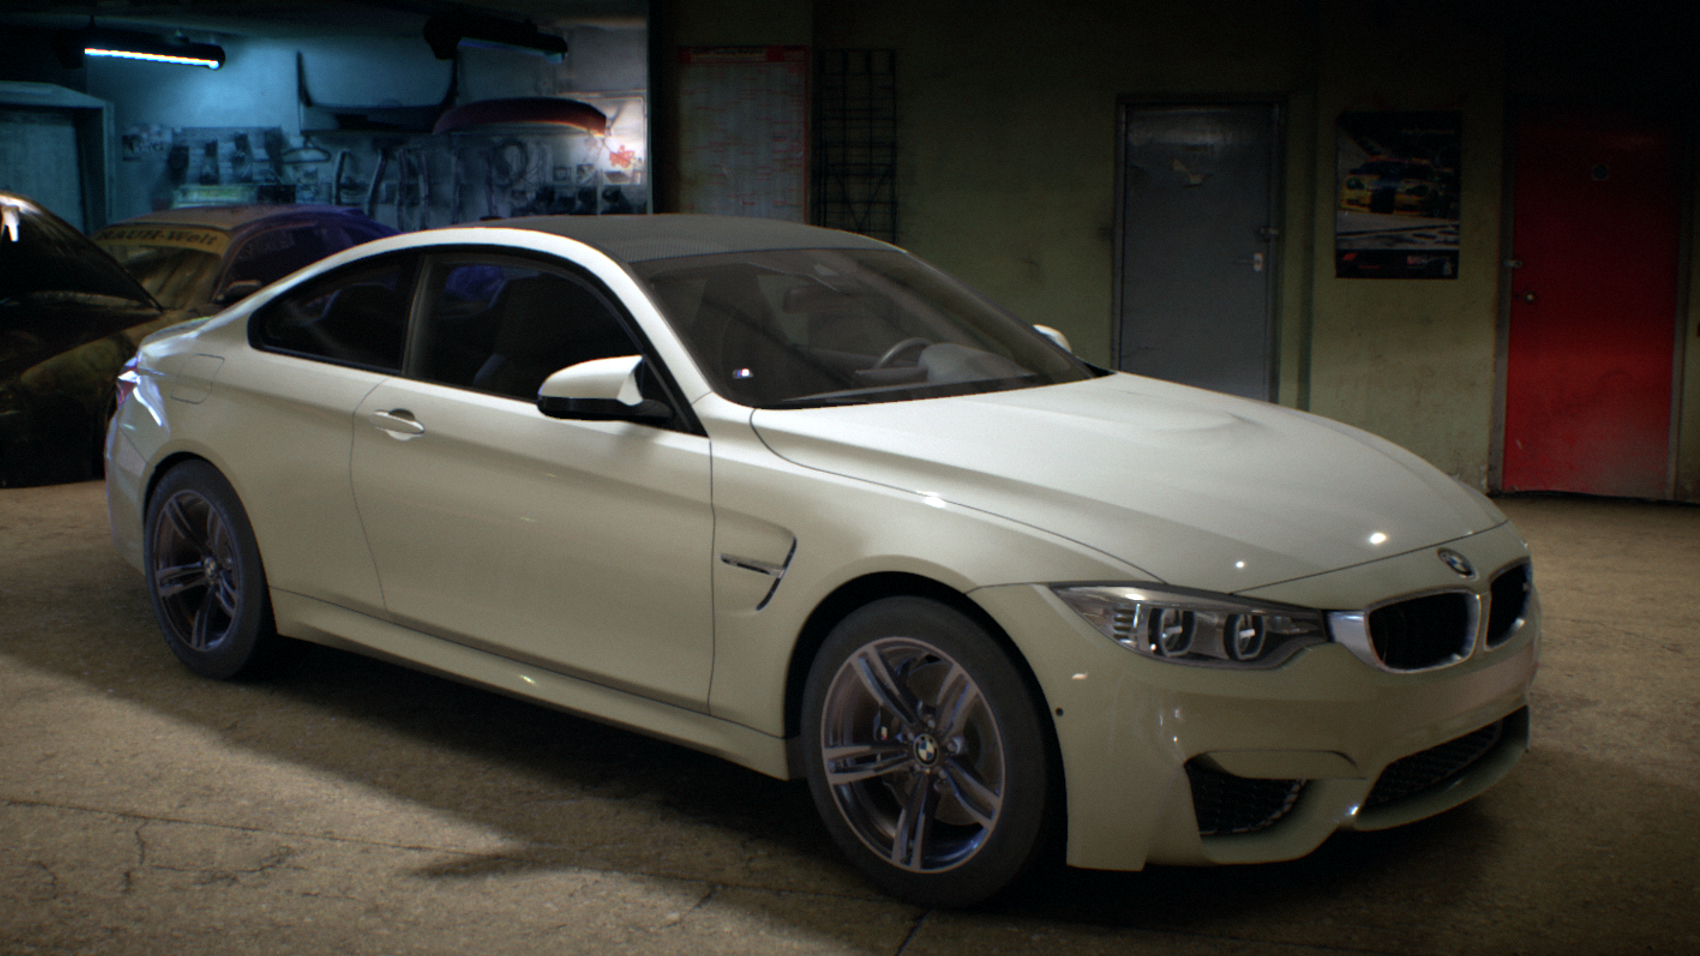 bmw m4 f82 need for speed wiki fandom powered by wikia. Black Bedroom Furniture Sets. Home Design Ideas